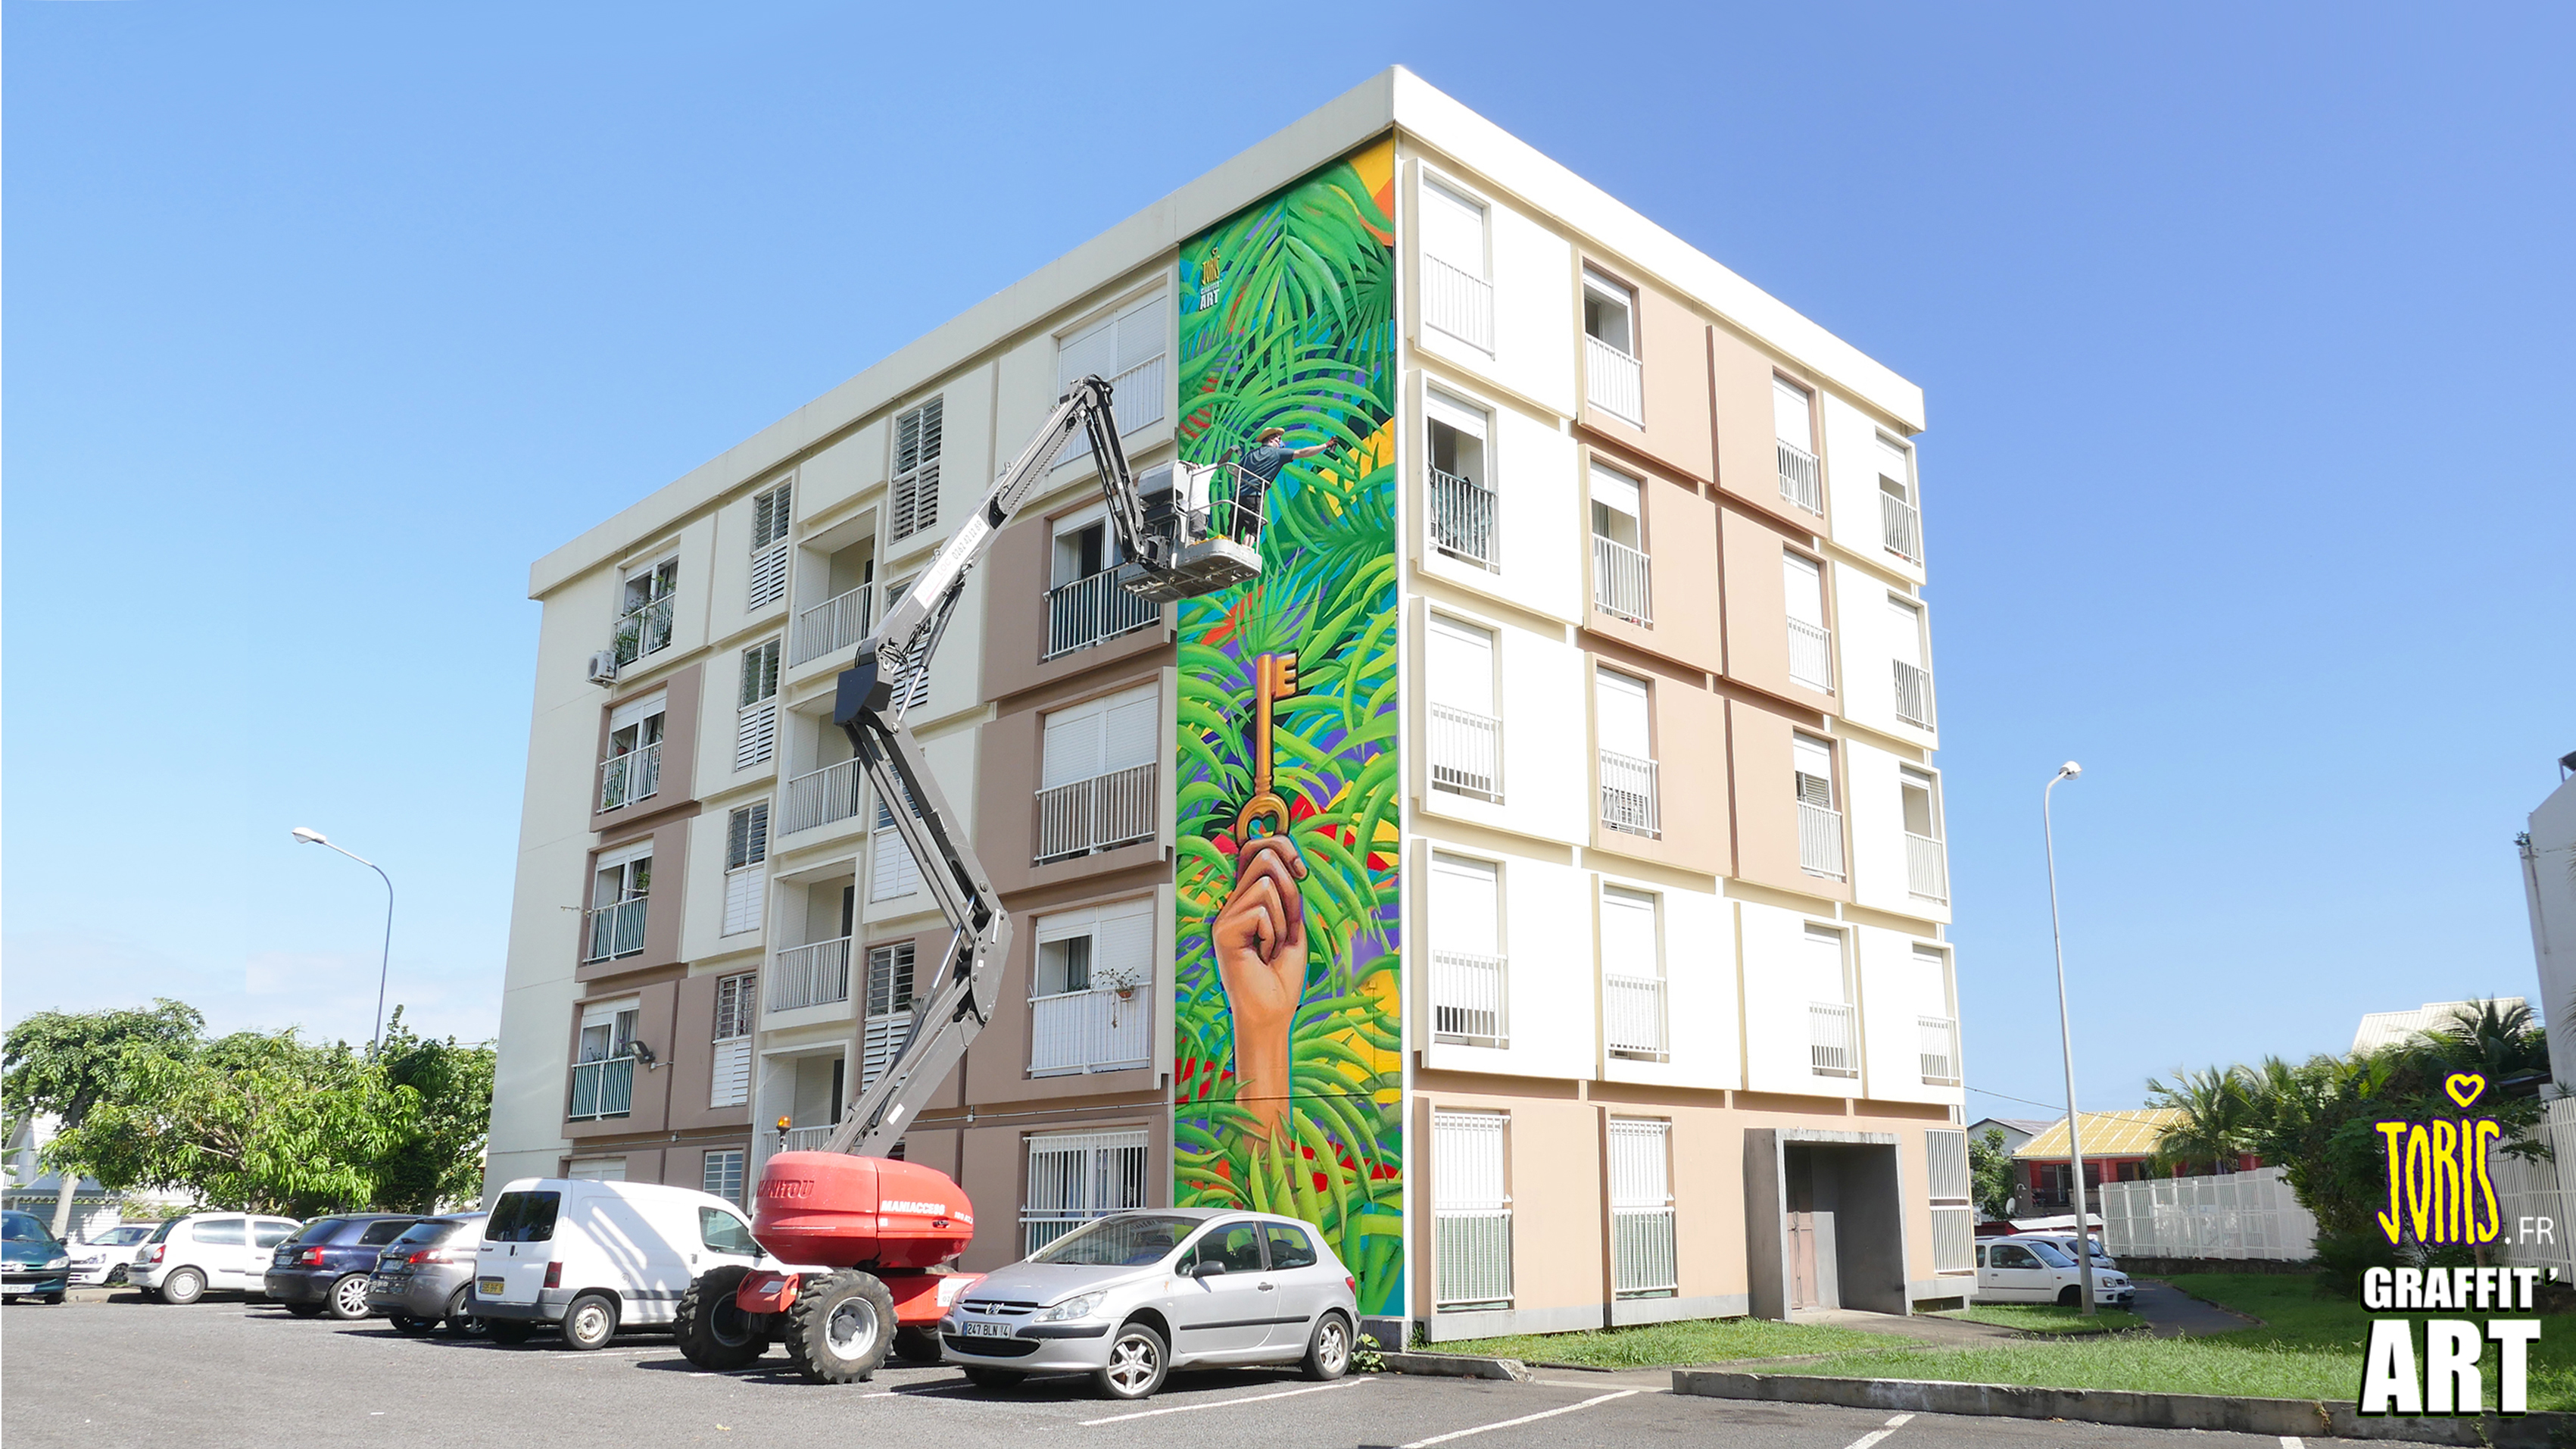 DECORATION-FACADE-GRAFFITI-ILE-DE-LA-REUNION-SAINT-DENIS-TRANSMISSION-BY-JORIS-DELACOUR-GRAFFIT-ART-01